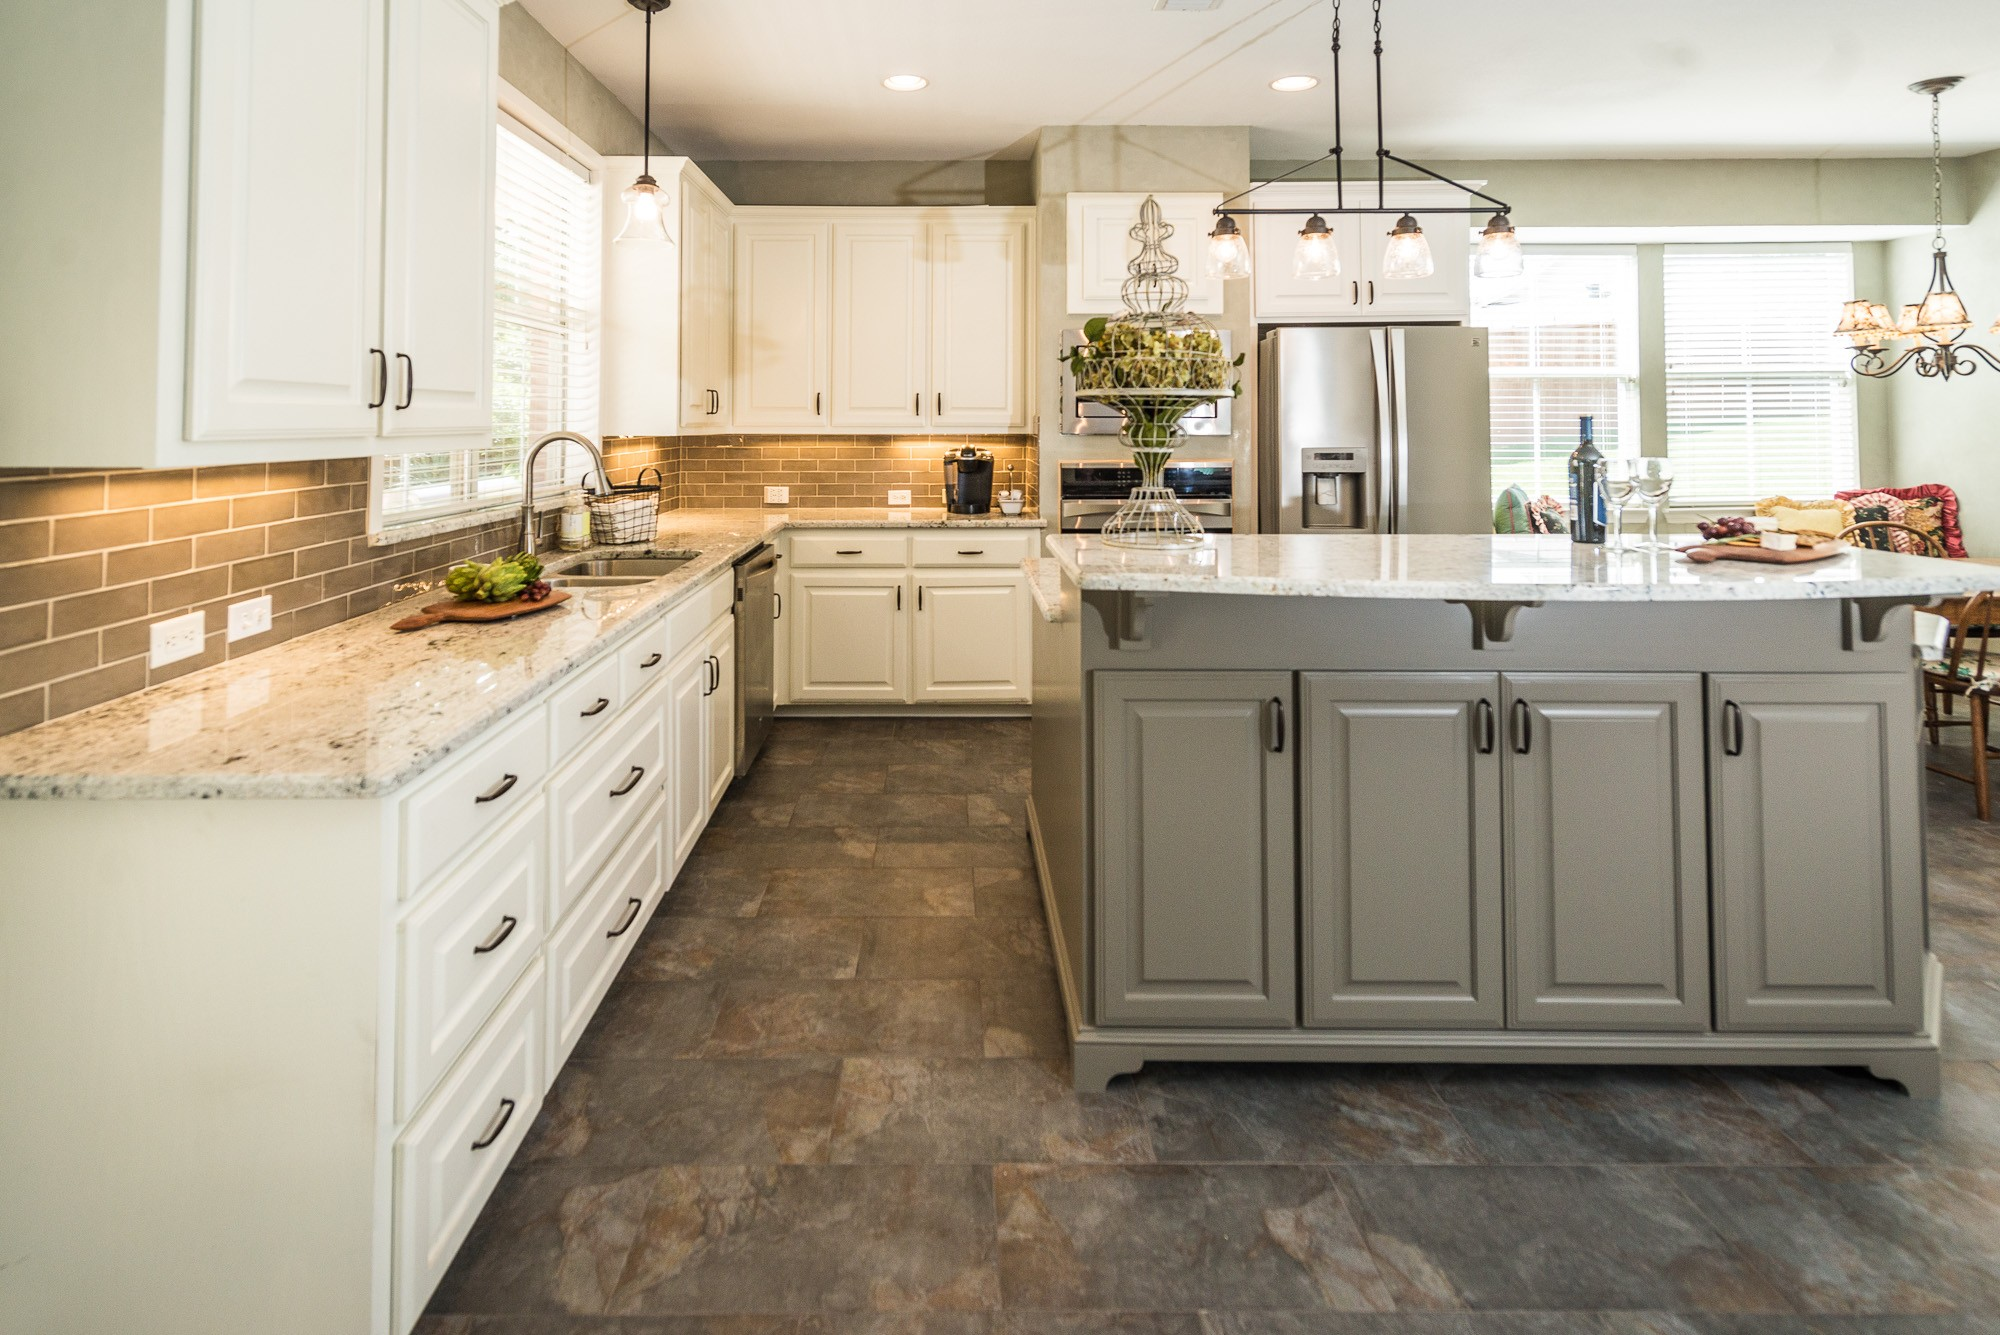 Elegant Windsor Kitchen Before and After   Irwin Construction  Click here to see mobile friendly project gallery